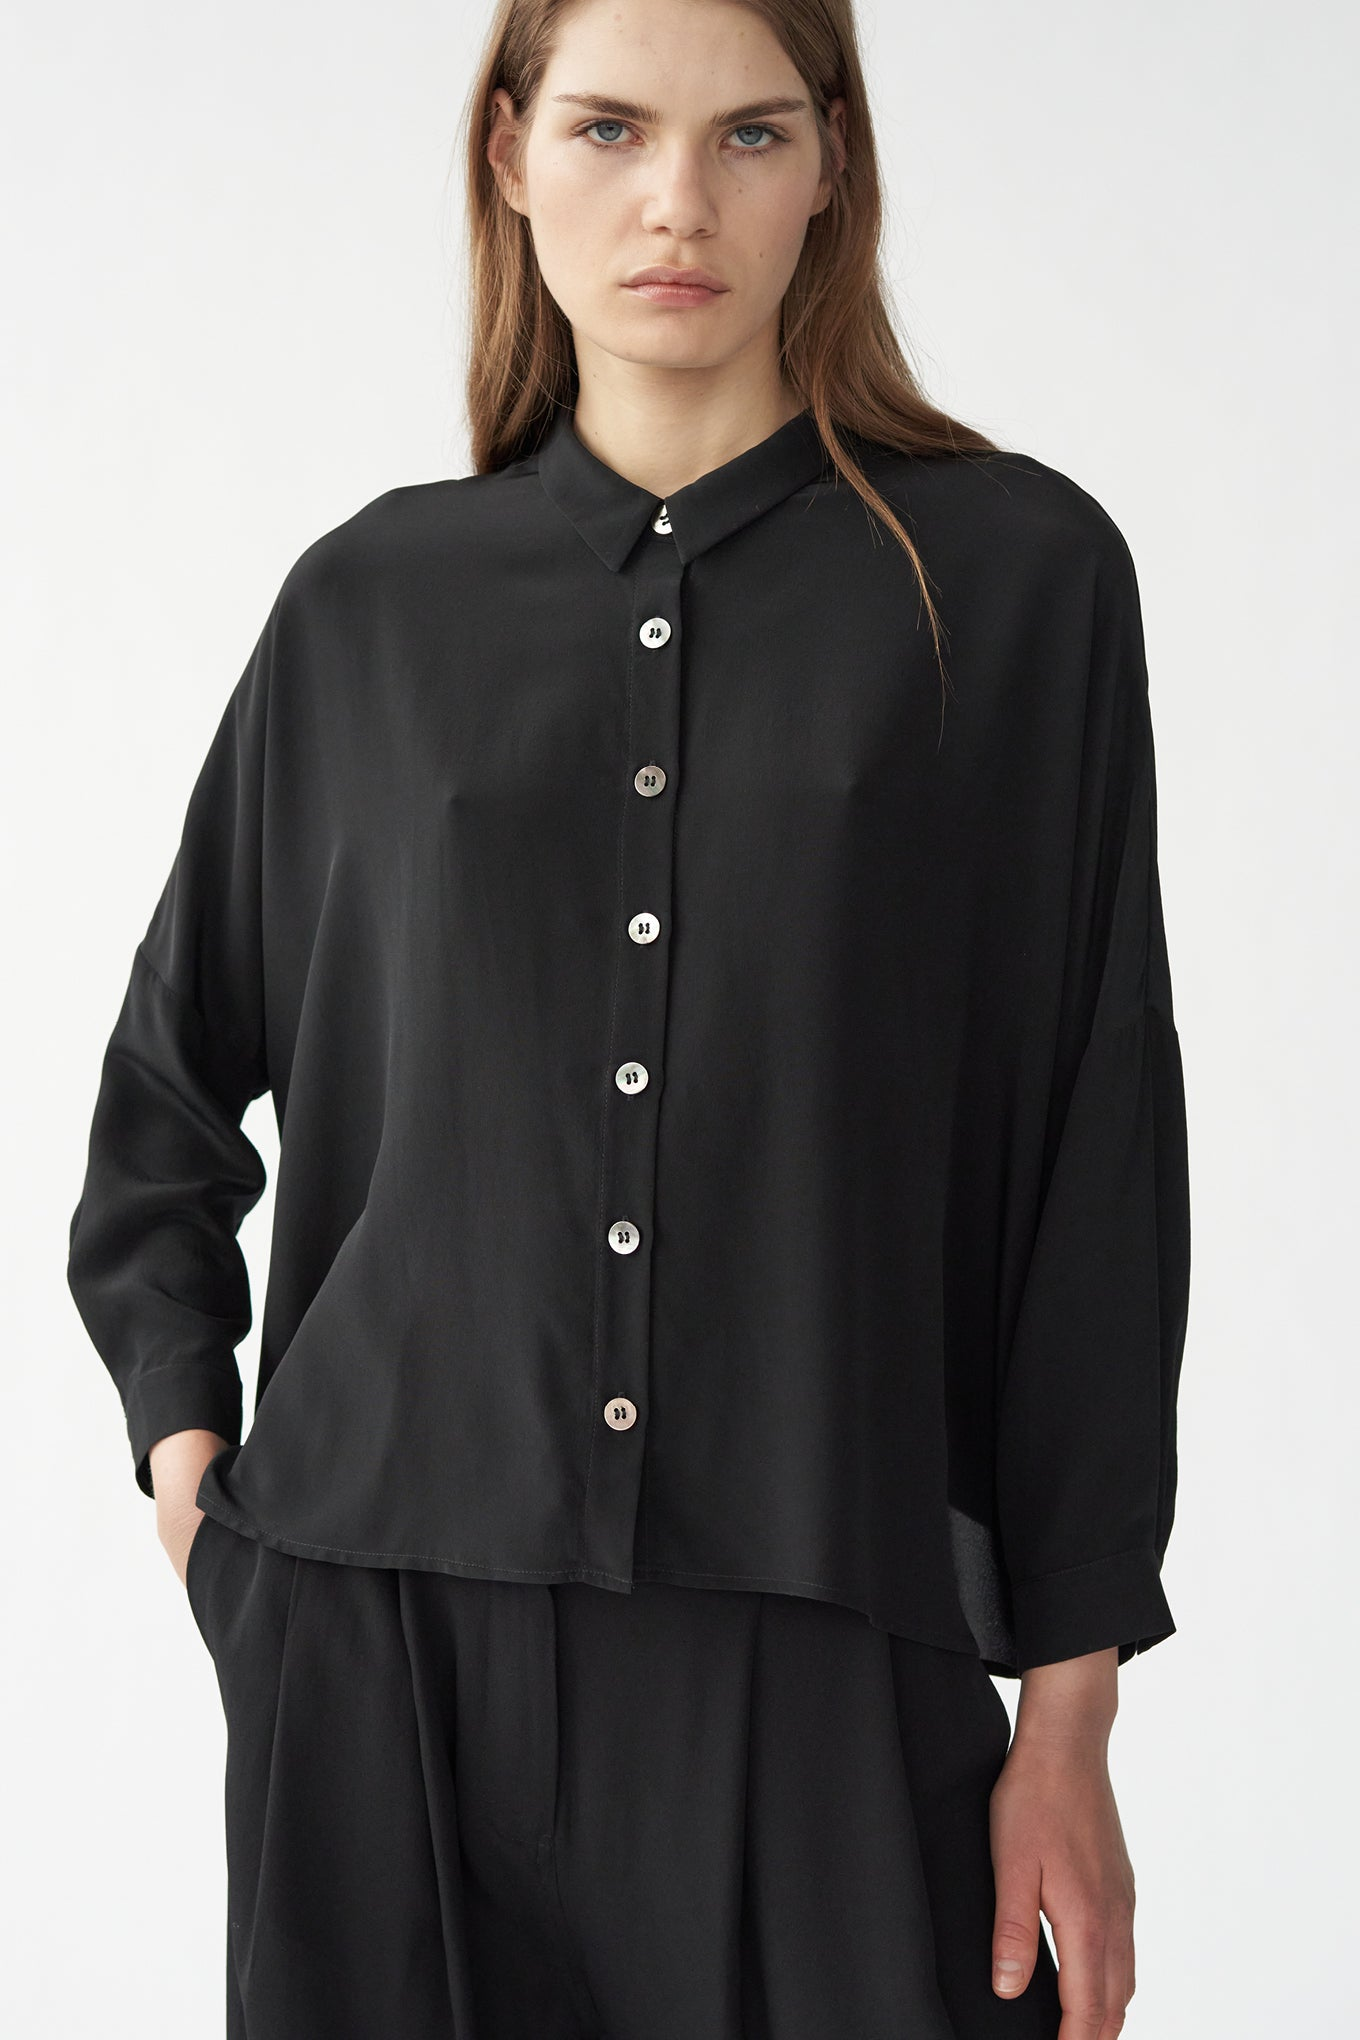 NEMO SHIRT - BLACK